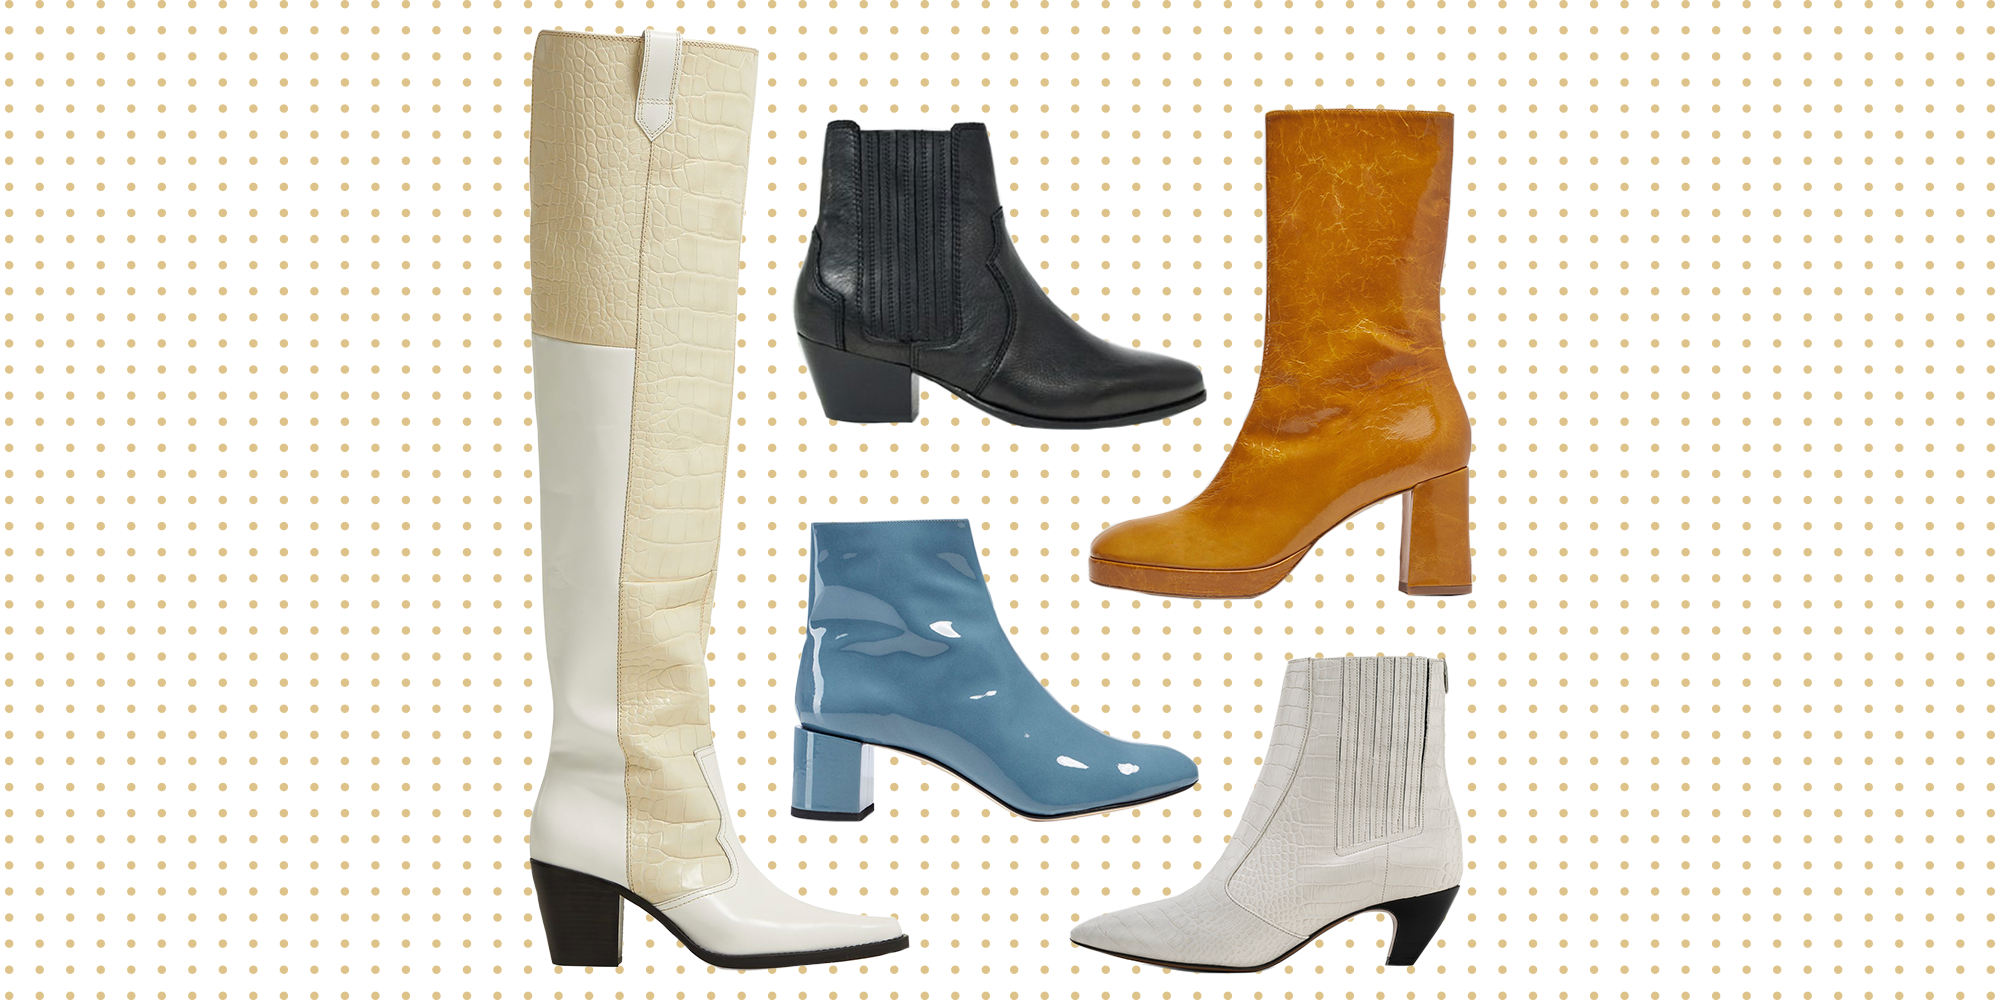 The 16 Best Spring Boots for Women of 2020